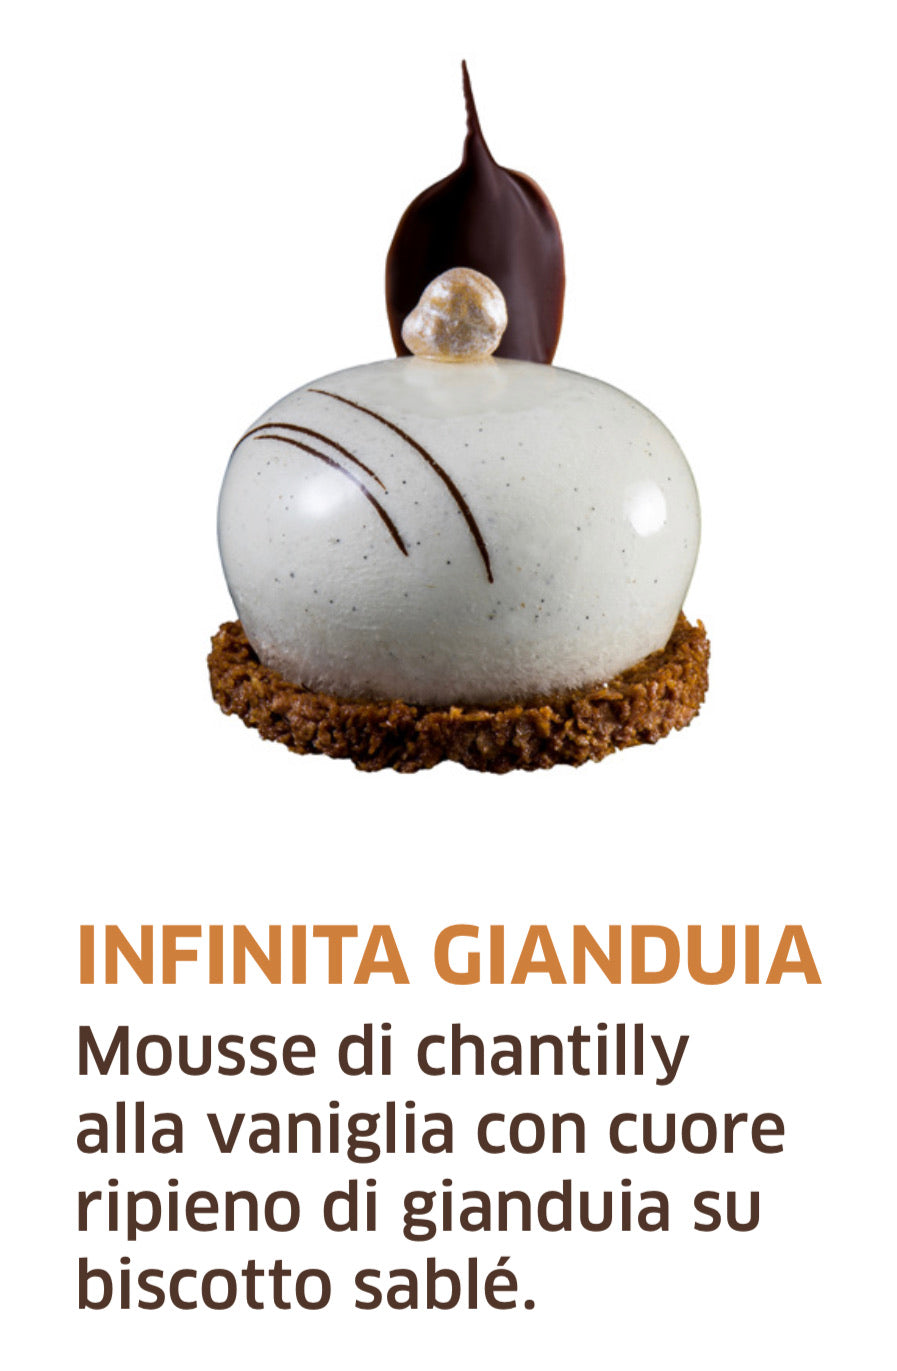 Infinita Gianduia H24 - FOR ME H24